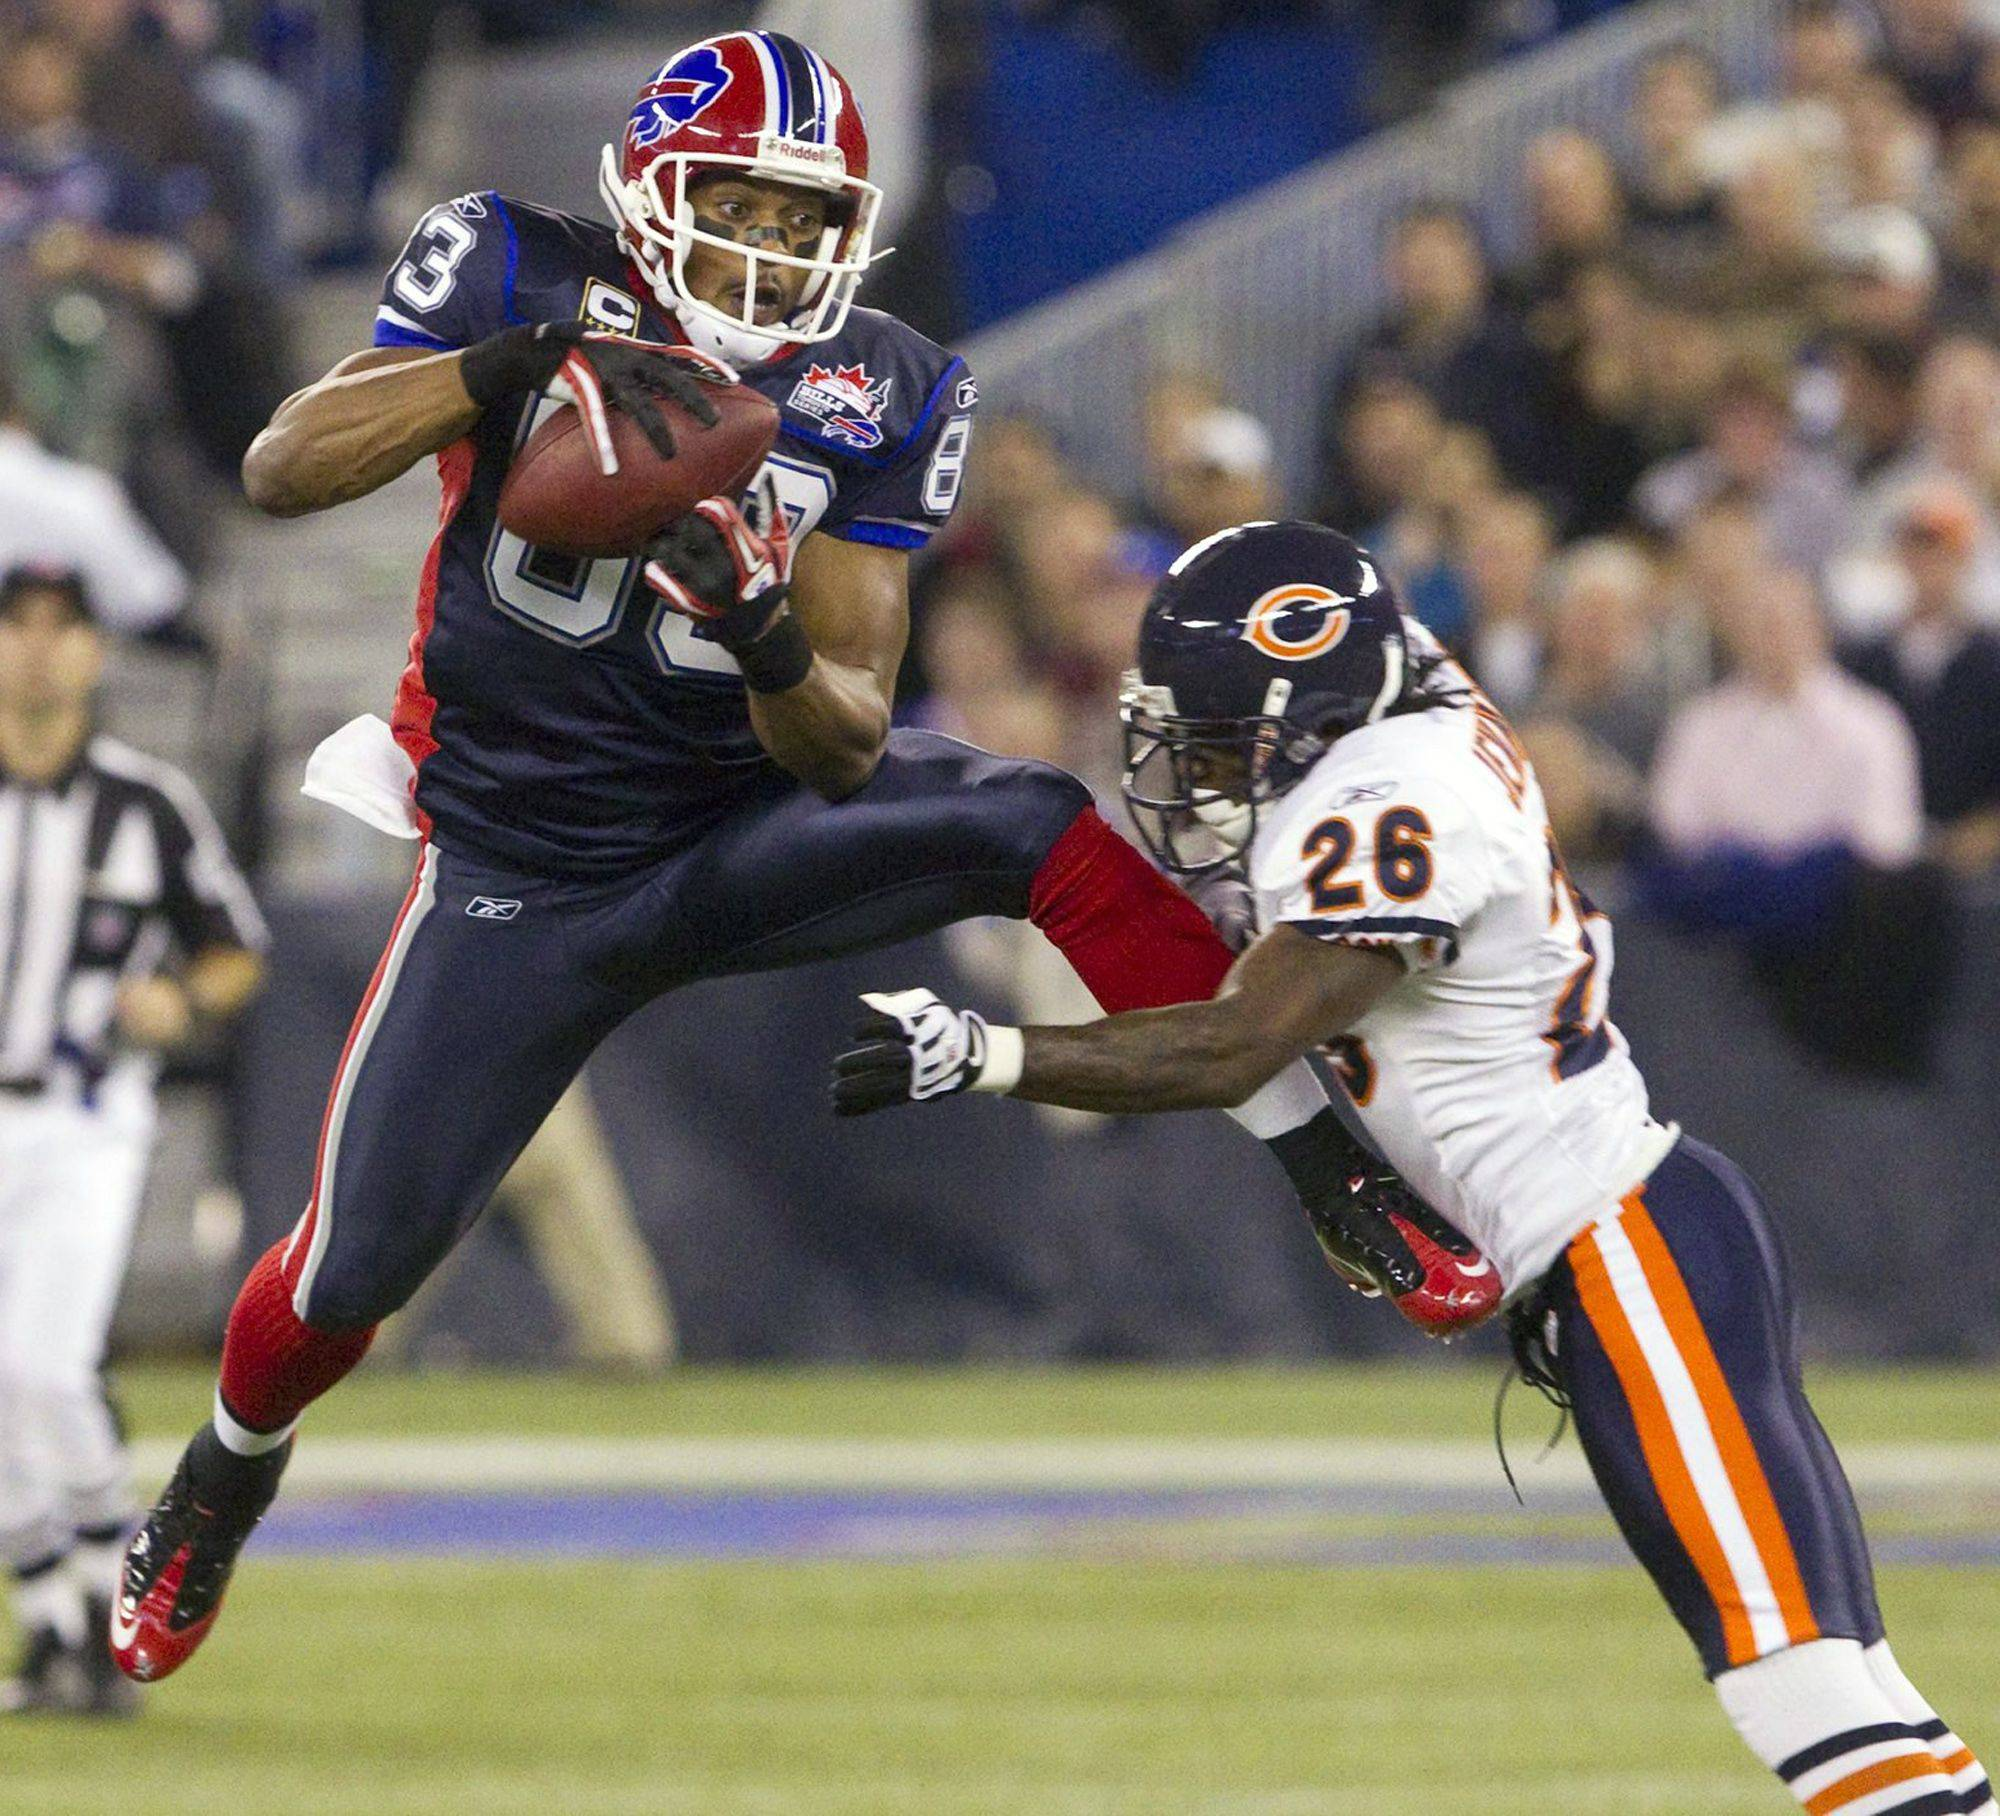 Buffalo Bills' Lee Evans, left, leaps to make a catch in front of Chicago Bears' Tim Jennings during first-half.